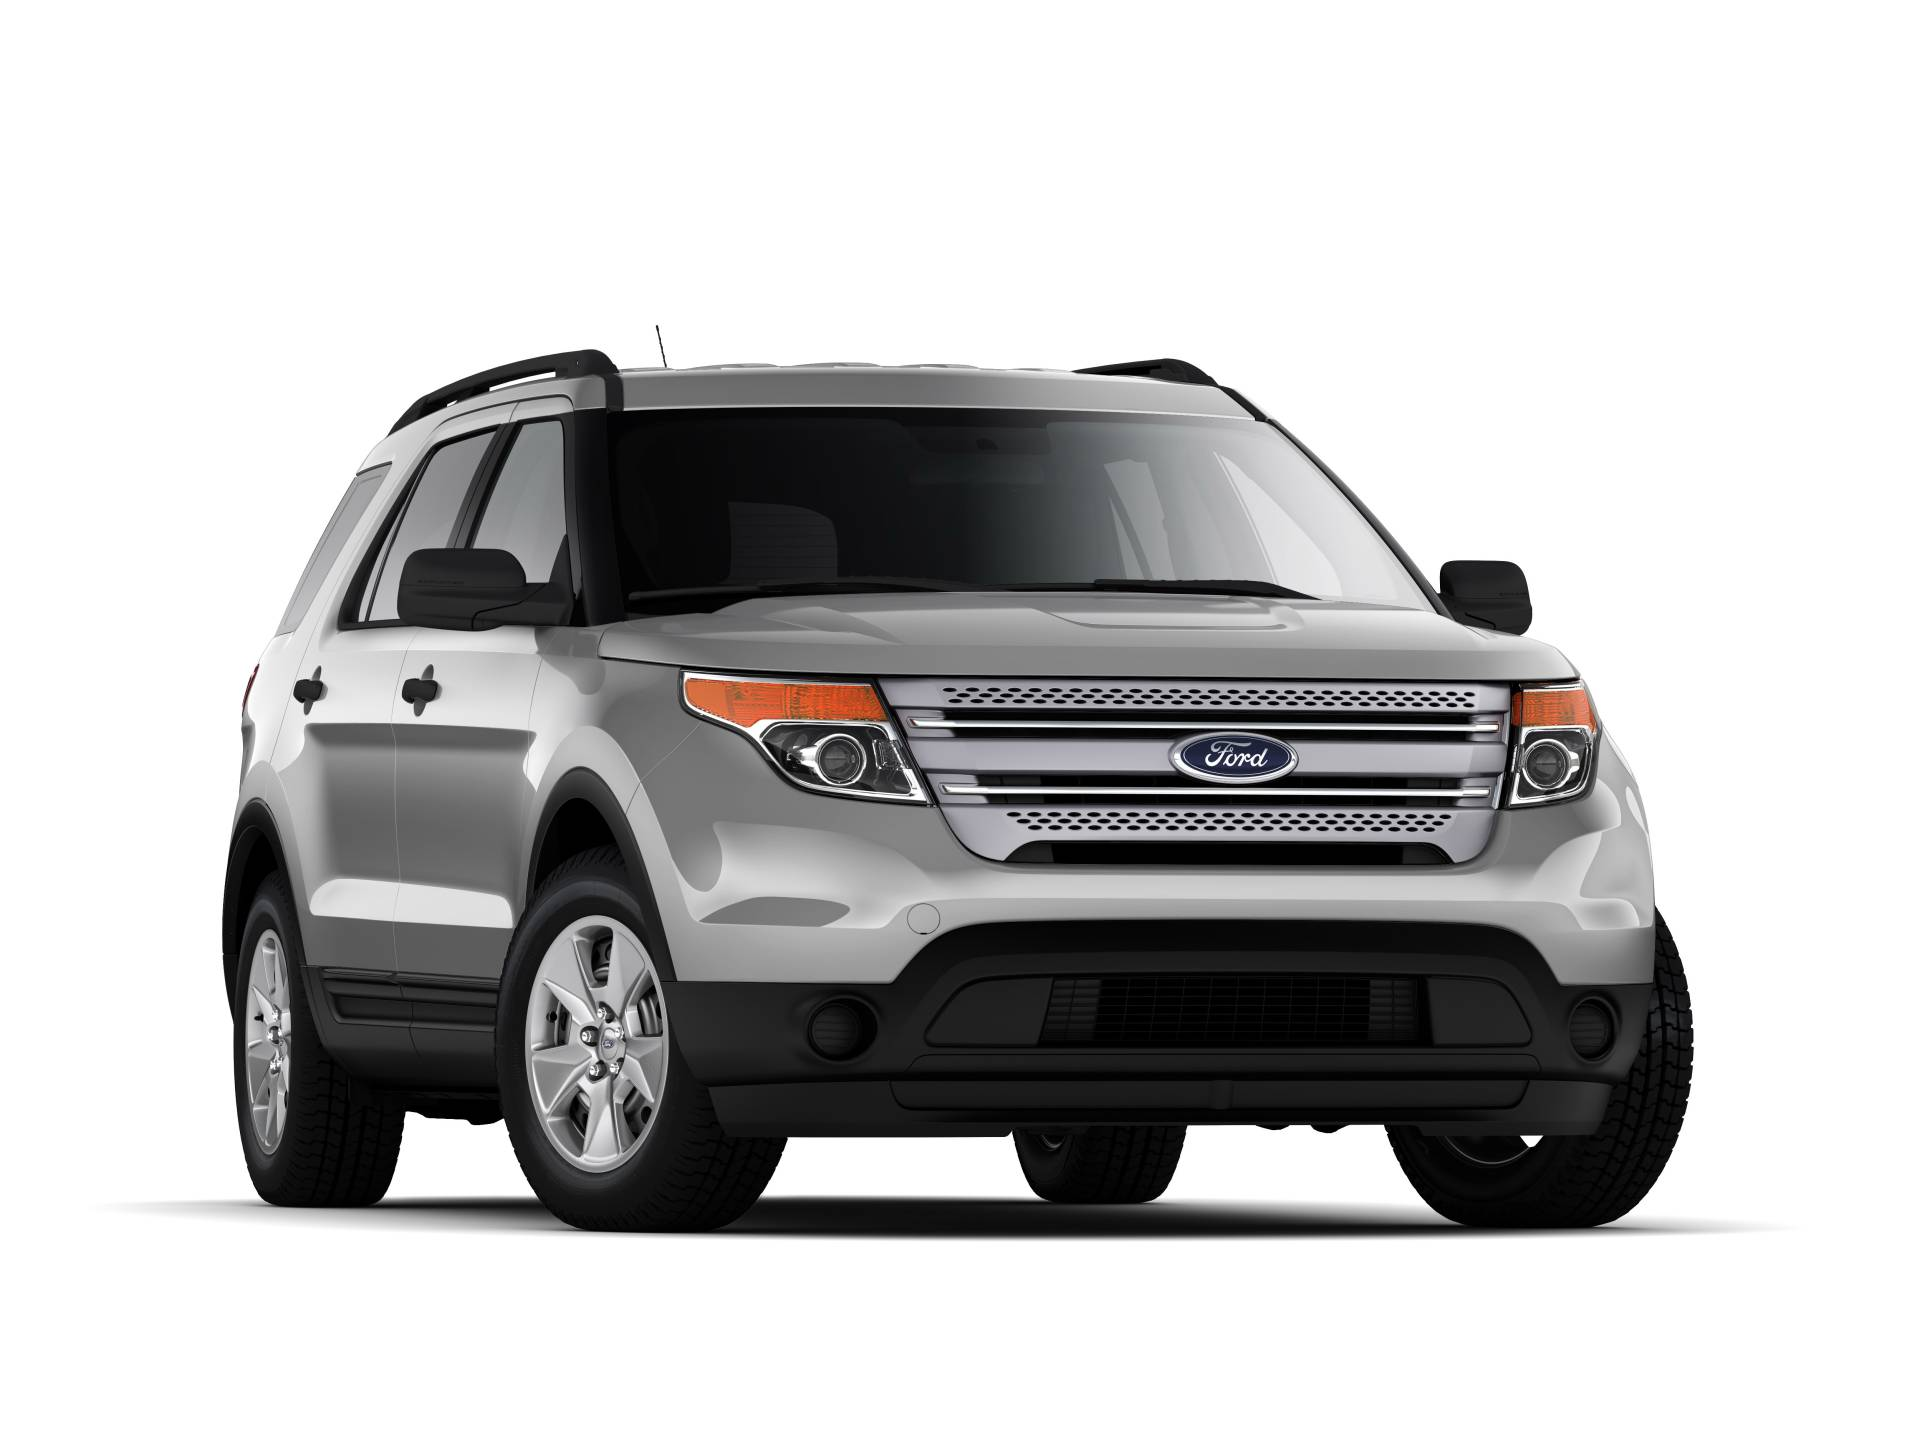 2013 ford explorer news and information conceptcarz com